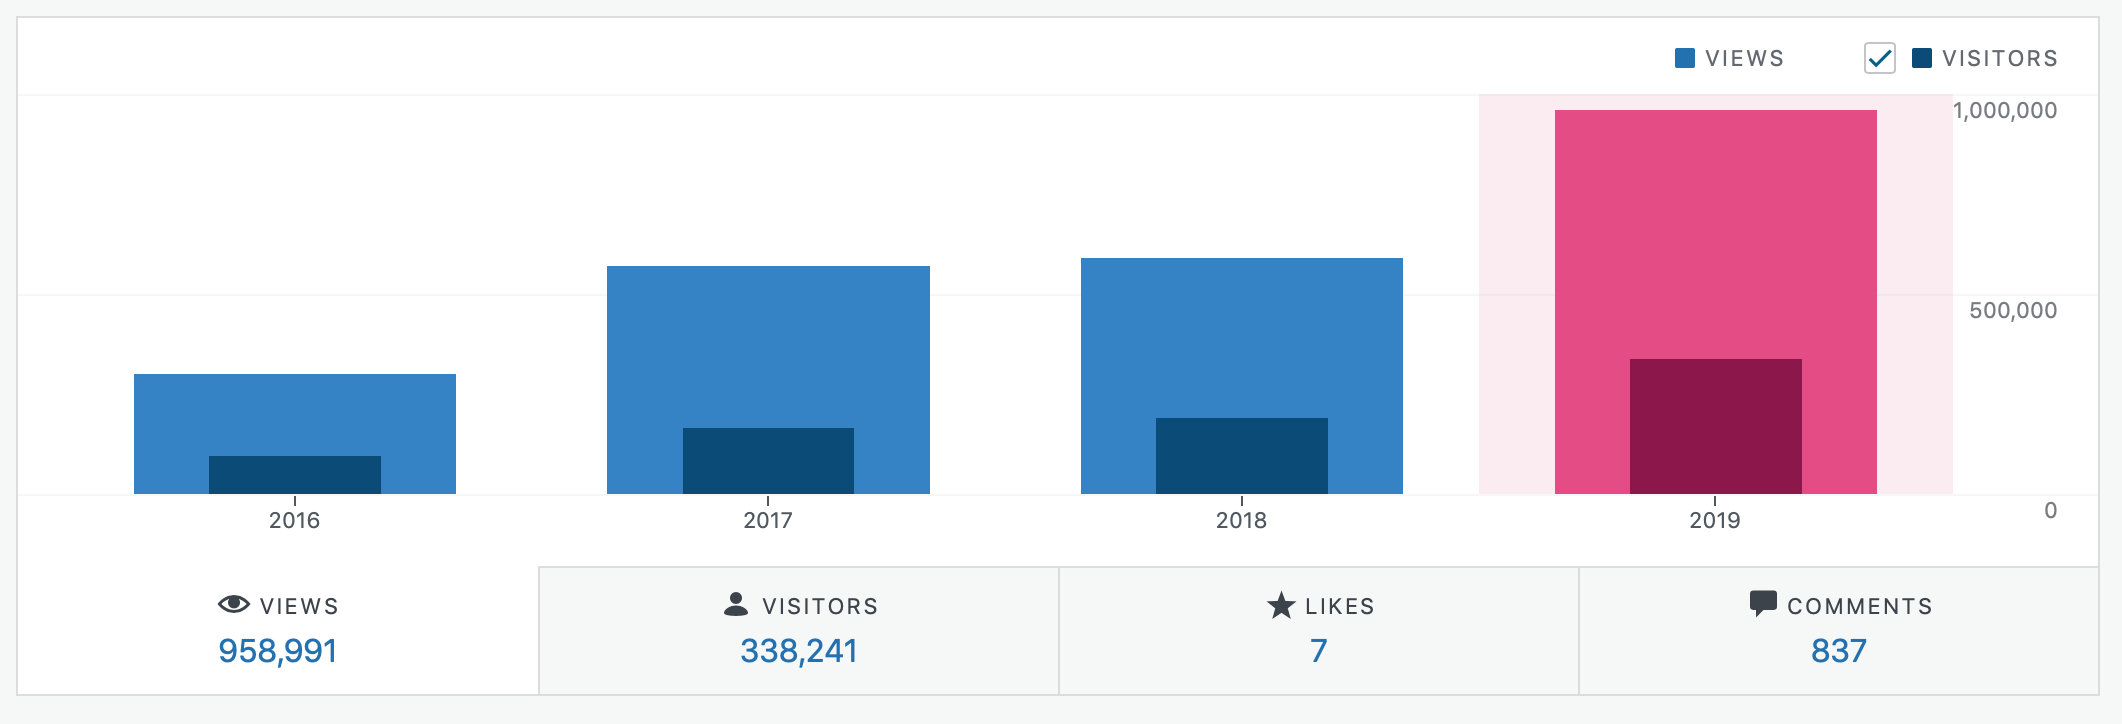 JetsonHacks 2019 Website Views